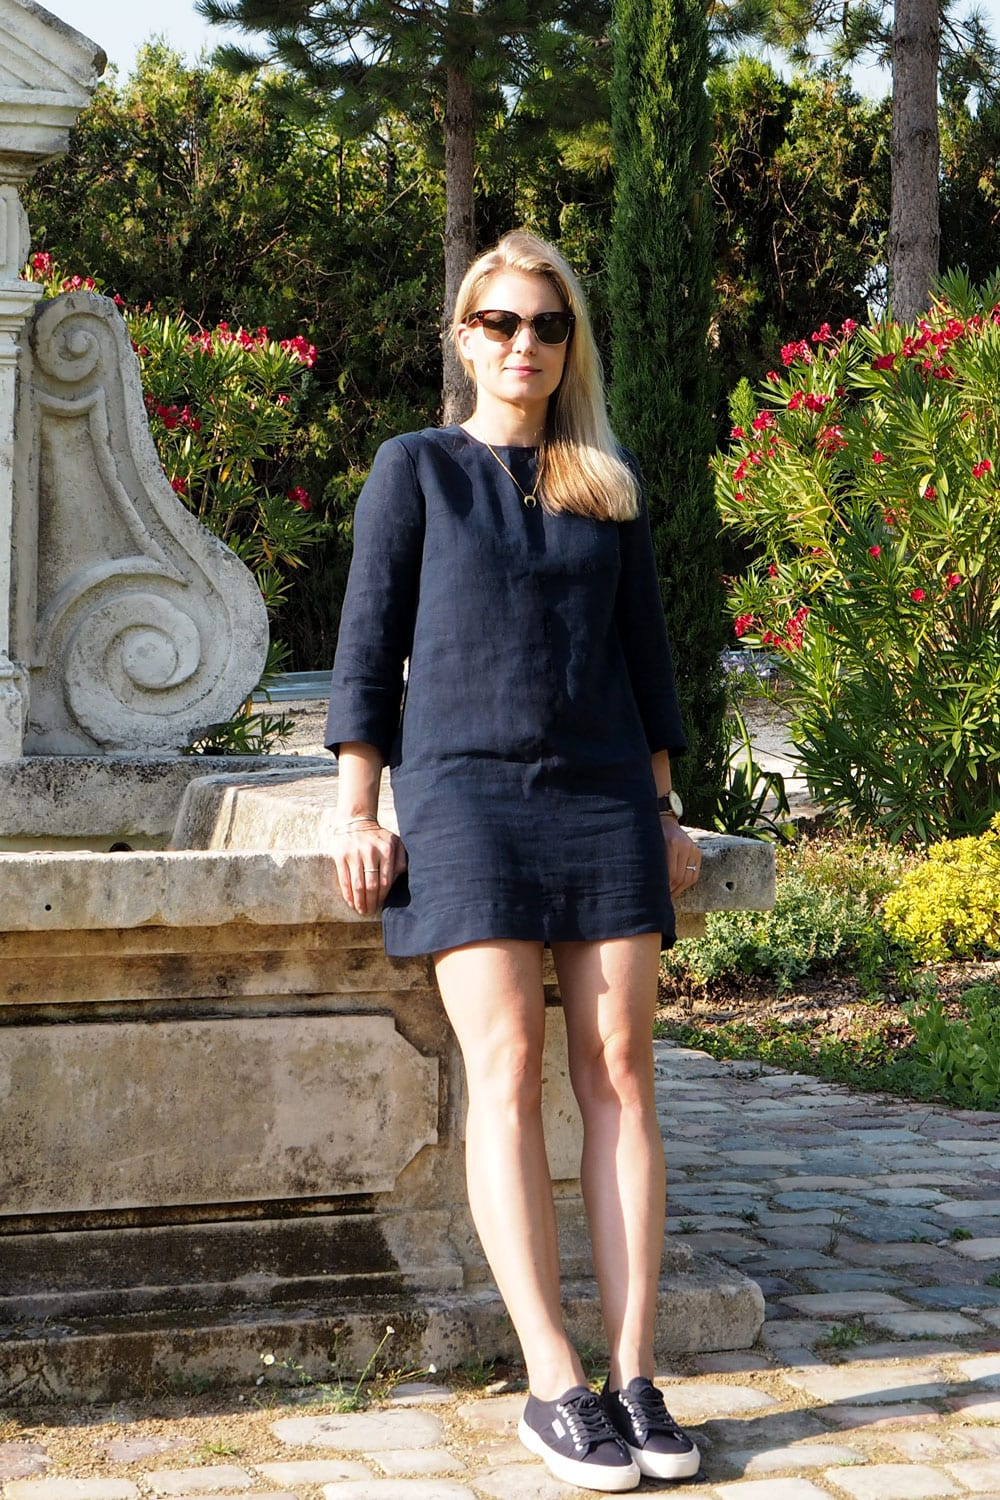 StyleAndMinimalism | Travel | Provence, France | Venue Hunting | Raquel Allegra Linen Dress, Superga 2750 Cotu in Navy, Osprey London The Safari Limited Edition Sunglasses, CFconcept Tusk Necklace